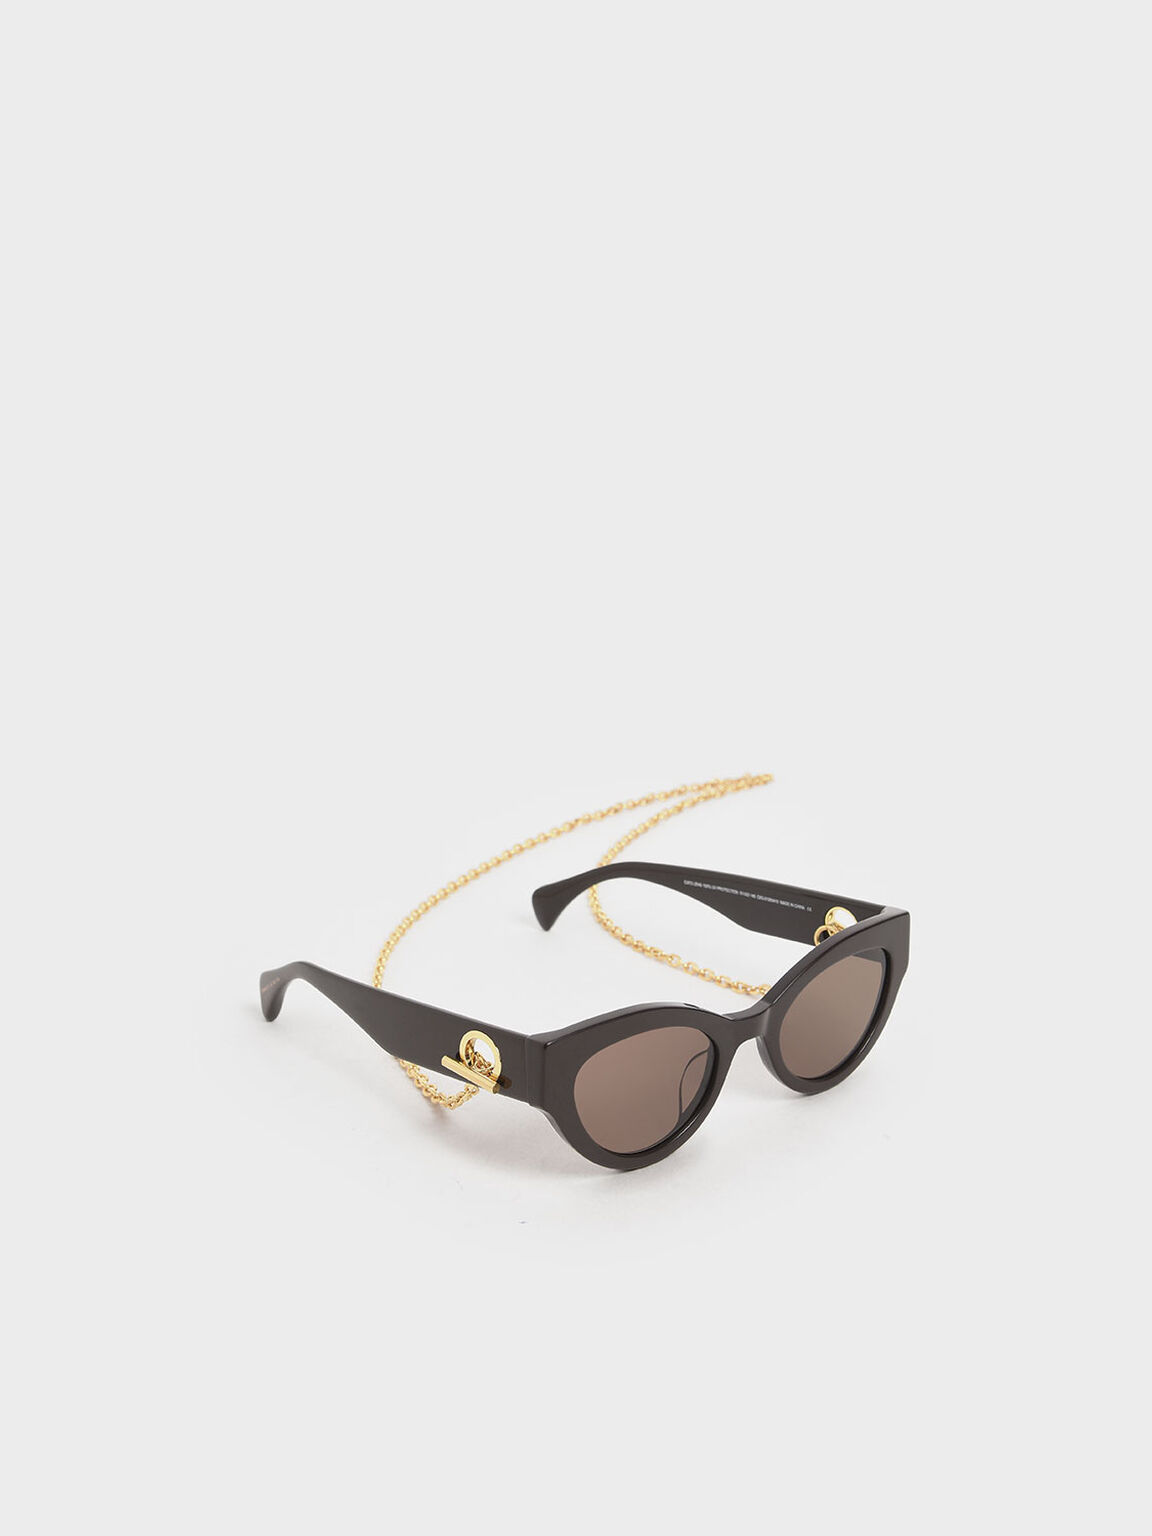 Chain Link Oval Sunglasses, Brown, hi-res